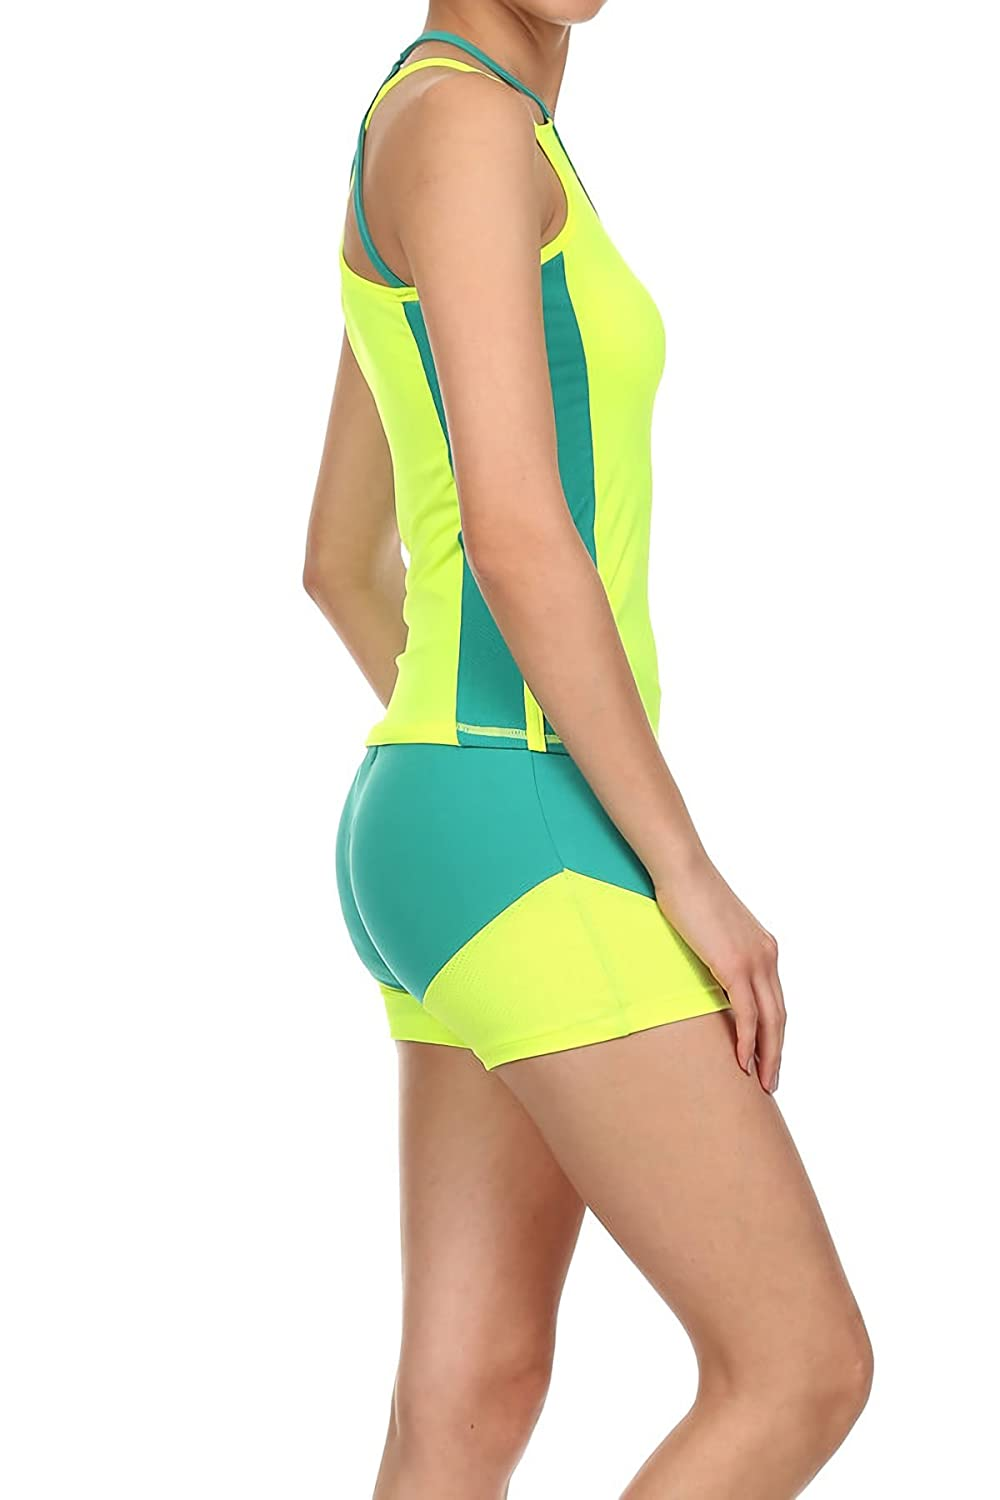 BB Jeans Womens 2 Piece Athletic Exercise and Fitness Set